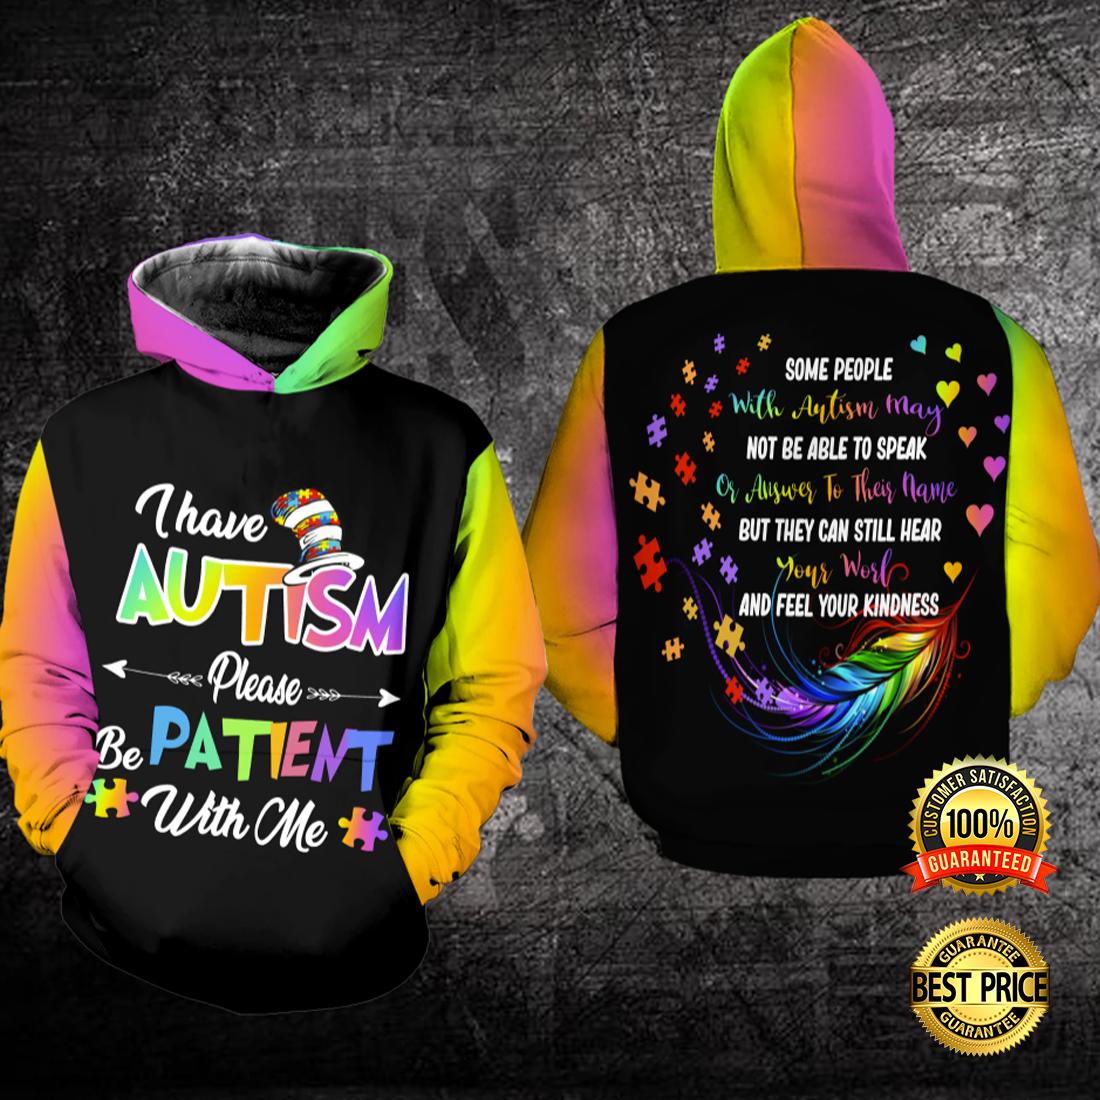 I HAVE AUTISM PLEASE BE PATIENT WITH ME ALL OVER PRINTED 3D HOODIE 5